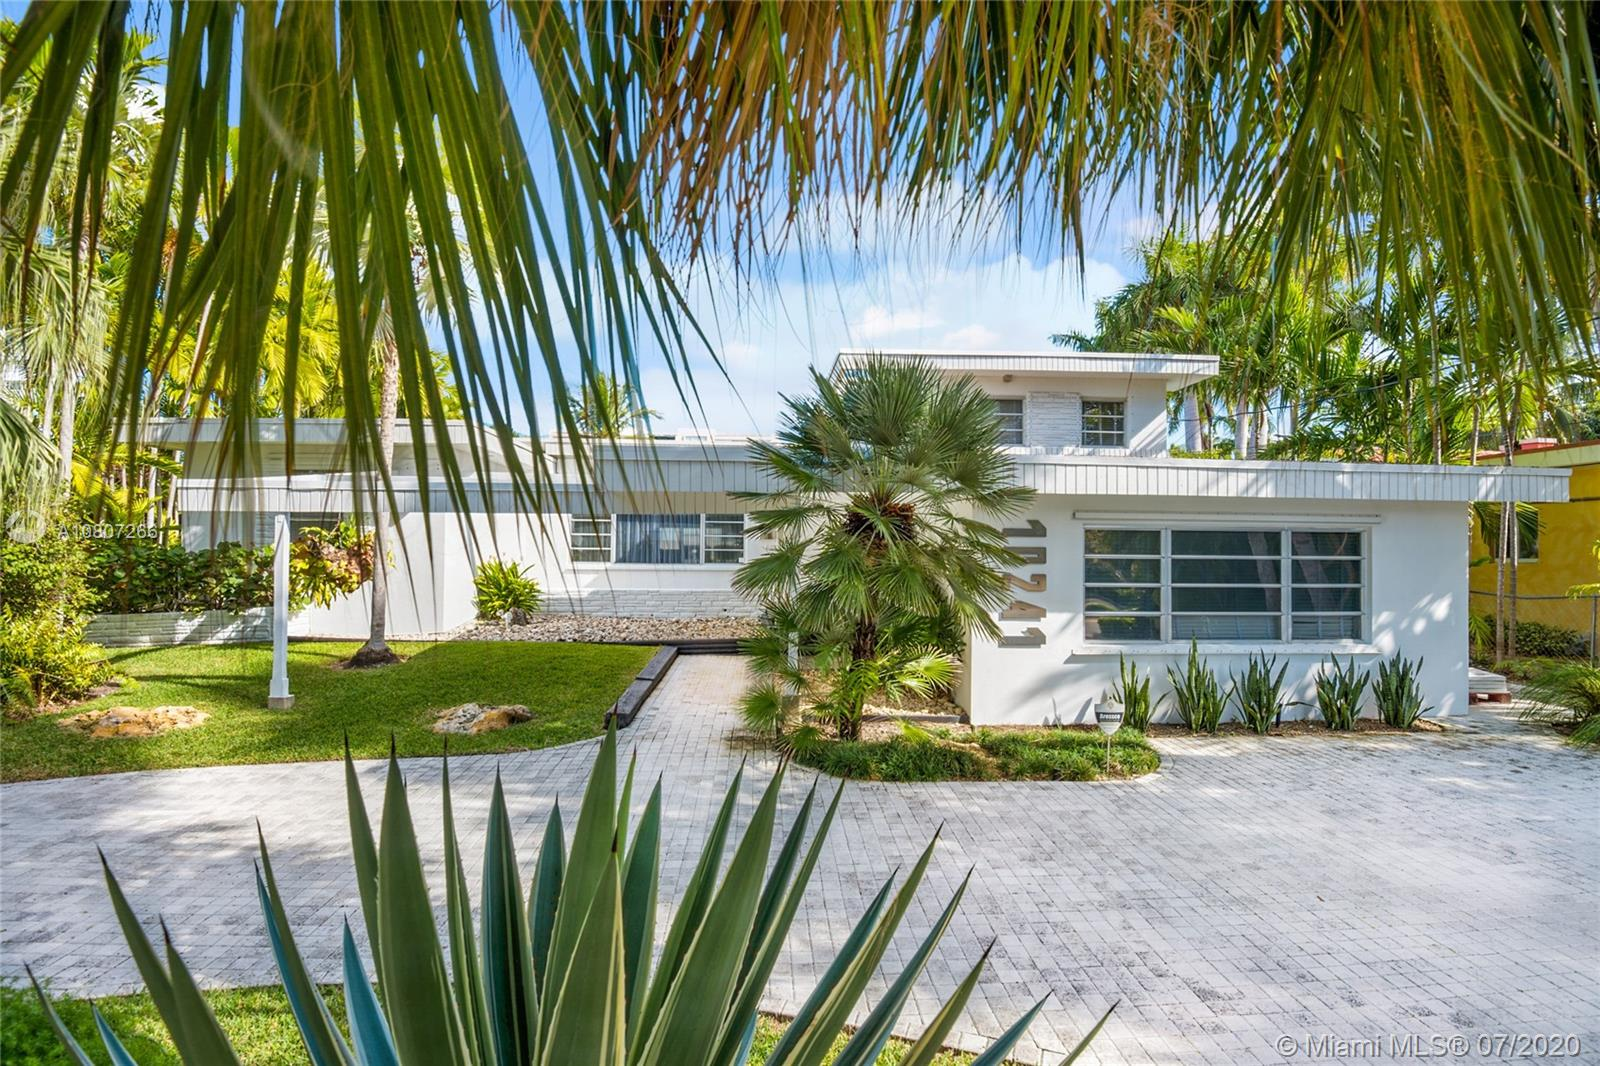 Bay Harbor Islands Mid-Century waterfront home w 1950's style & allure. Situated on the far north side of the island, this iconic residence is 3 lots from the open waters of Biscayne Bay- offering direct ocean access, within minutes. Upon entering the house, you will find seamless terrazzo floors (in mint condition), original architectural features & amazing distribution of space w/ an open floor plan. 5 bd/4 full baths + nanny's rm. The seawall/cap/dock (75' on the water) were completed in 2015 w/ refinished pool/lounge area. Impeccably designed kitchen redone in 2015 w/ all Viking gas appliances. Separate master bdrm, offering privacy & views of the water. Waterfront living at it's best! A-rated schools, walk to beach, Bal Harbour Shops, & houses of worship. Over 3700 sq ft as per owner.